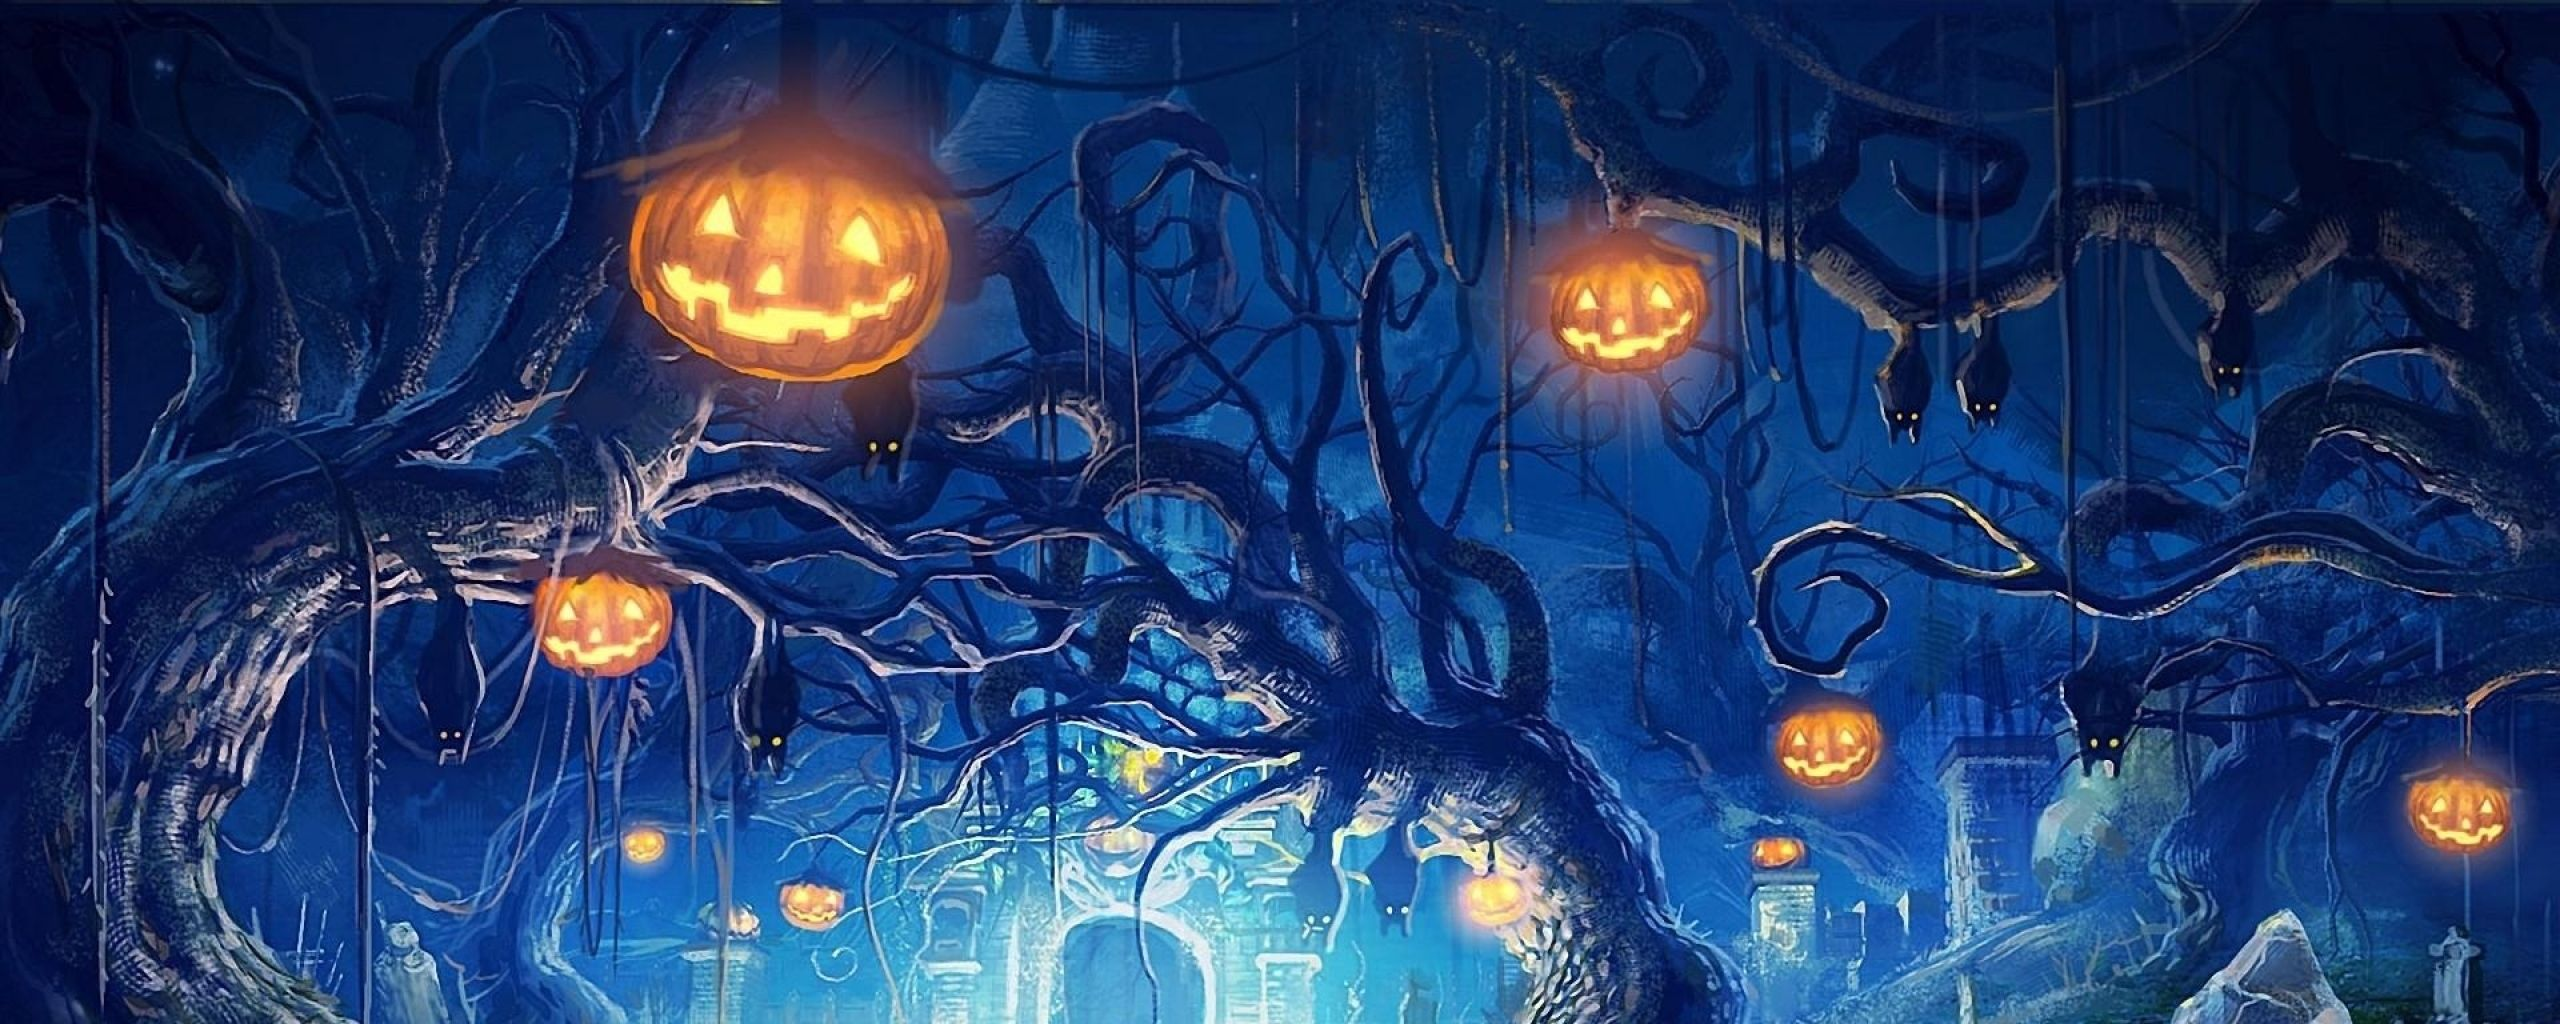 Halloween Dual Monitor Wallpapers Top Free Halloween Dual Monitor Backgrounds Wallpaperaccess